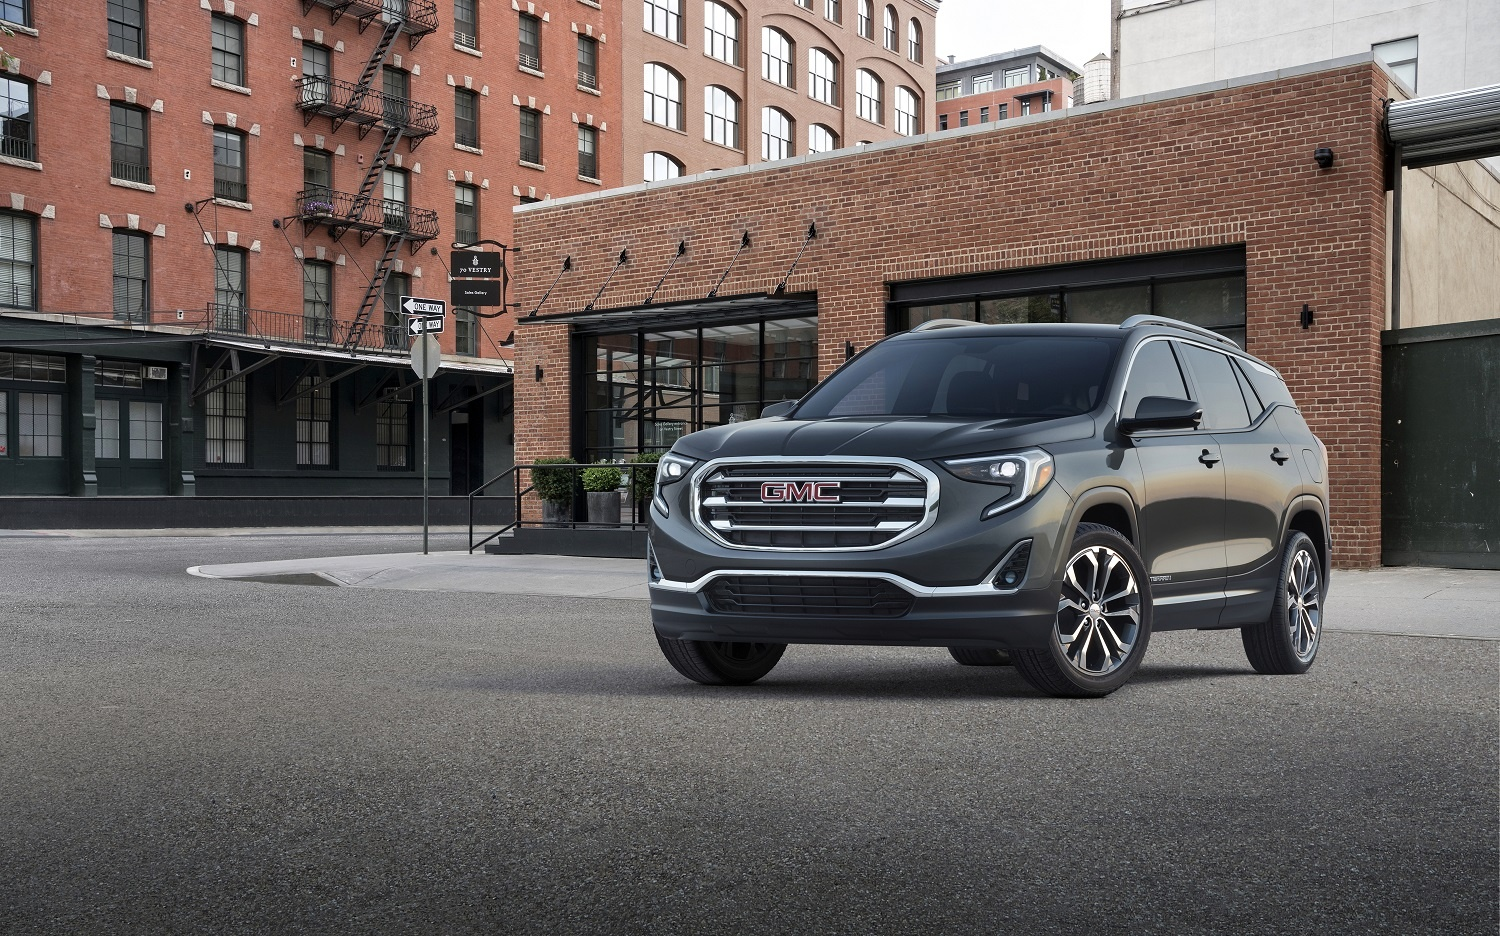 GMC offers UAE customers virtual buying experience complete with online financing and enticing deals